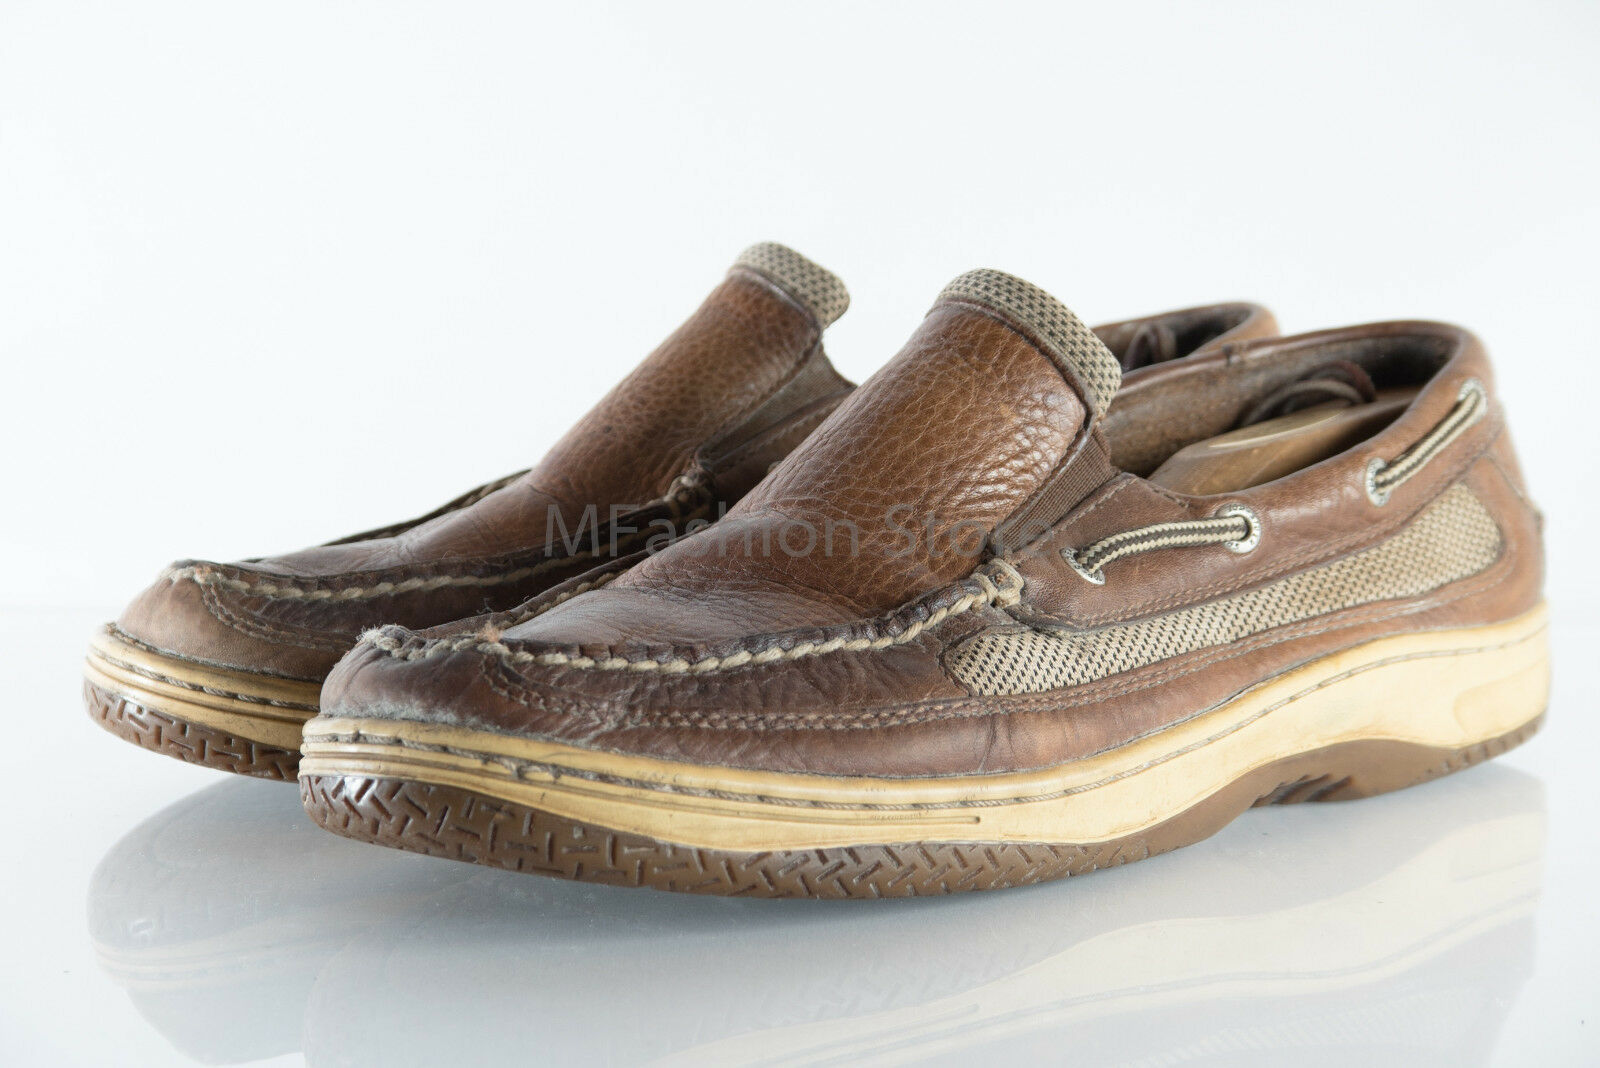 Sperry Brown Leather Upper Loafers CH133 Mens shoes Size US 11.5M Pre Owned